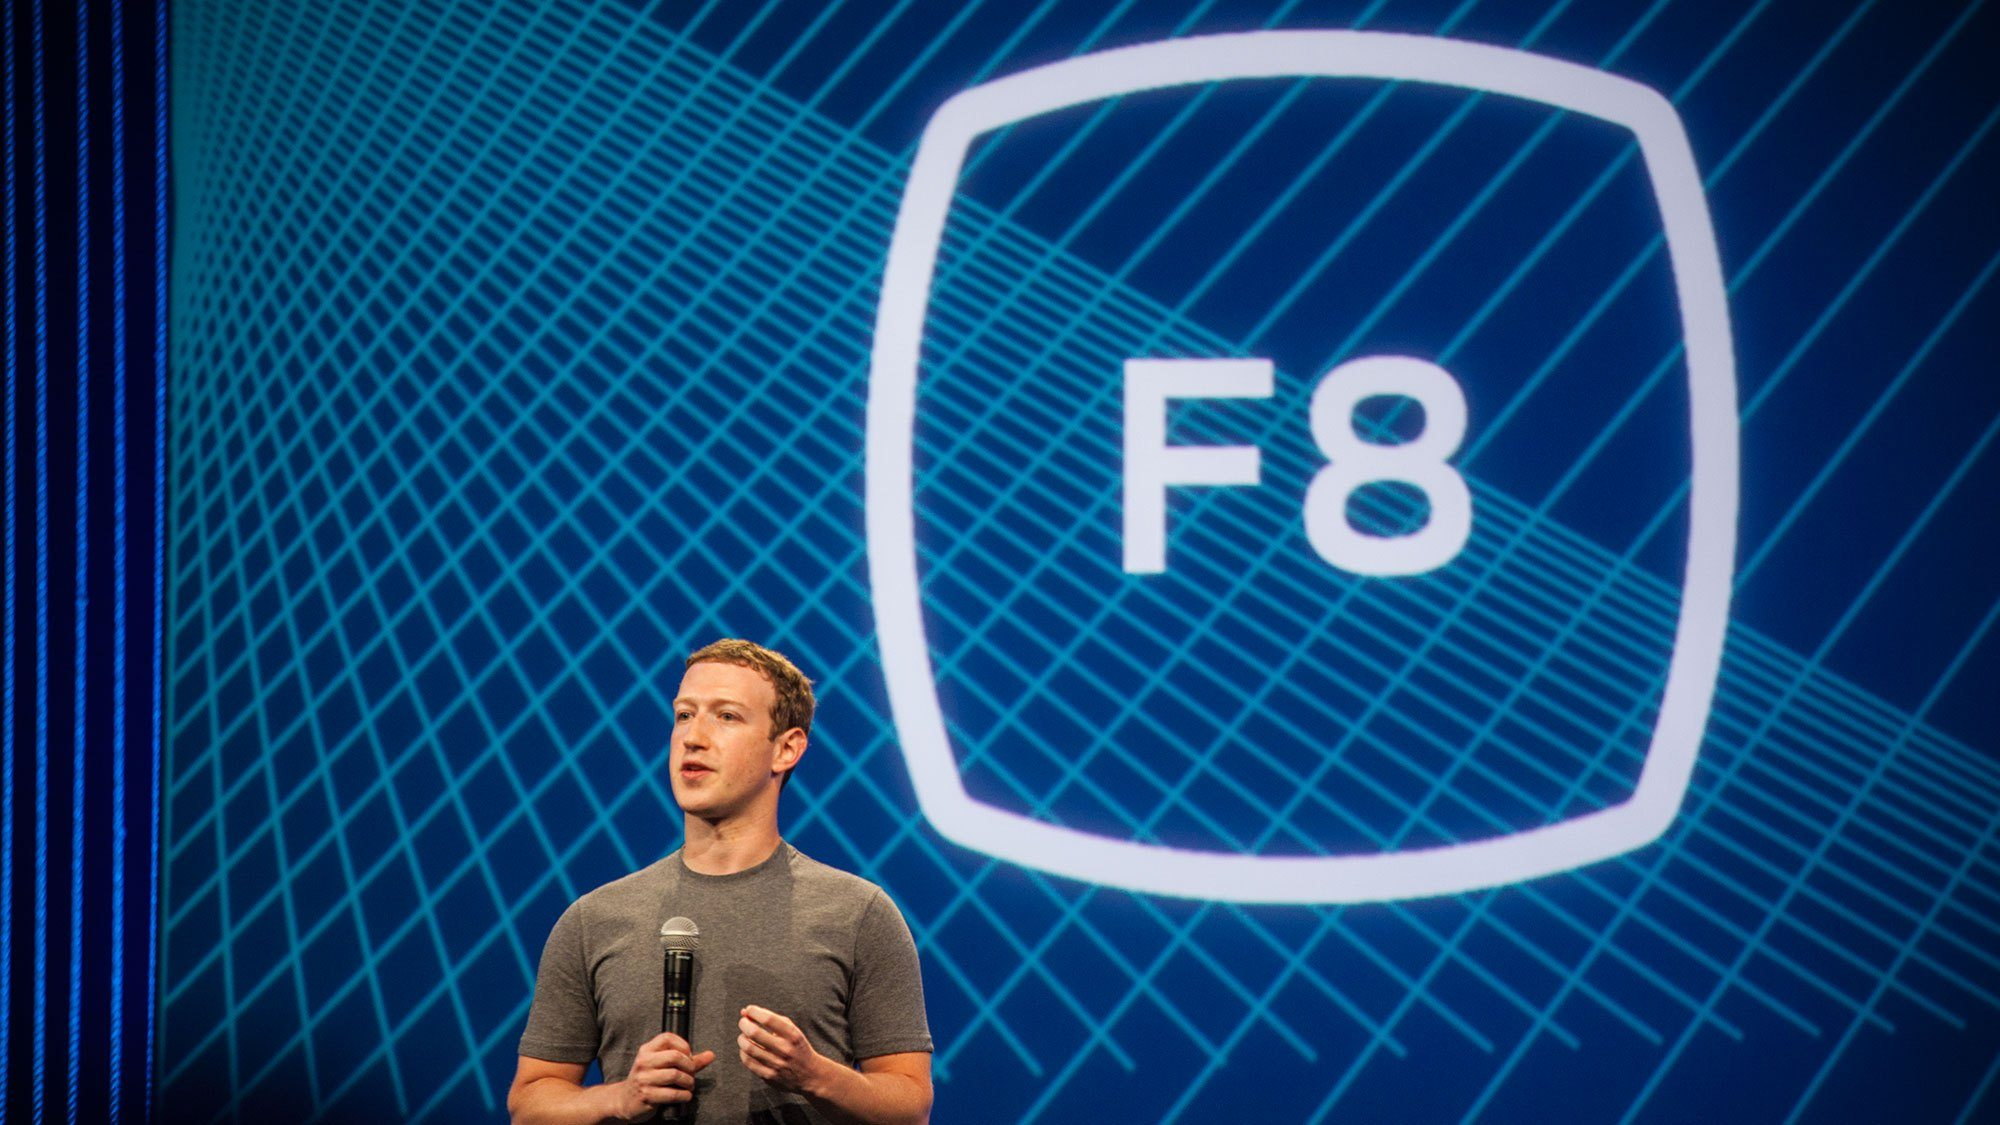 News from the F8 Conference about Facebook Messenger